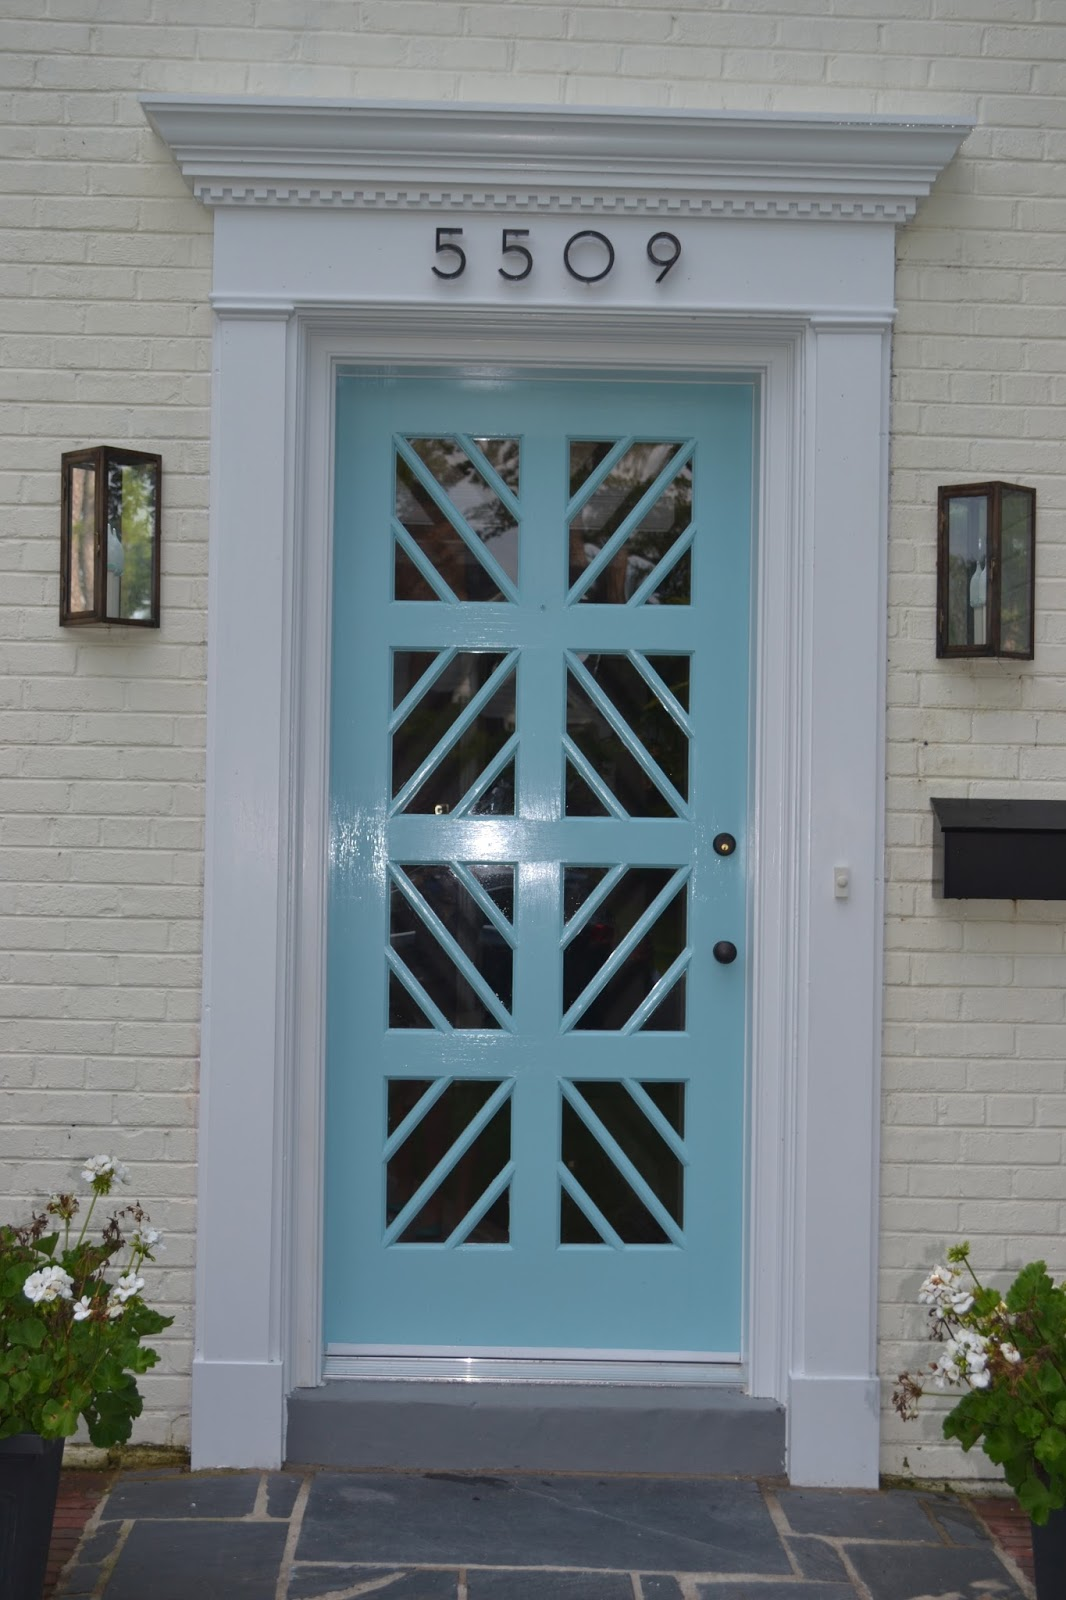 LUCY WILLIAMS INTERIOR DESIGN BLOG: FRONT DOOR FABULOUS....